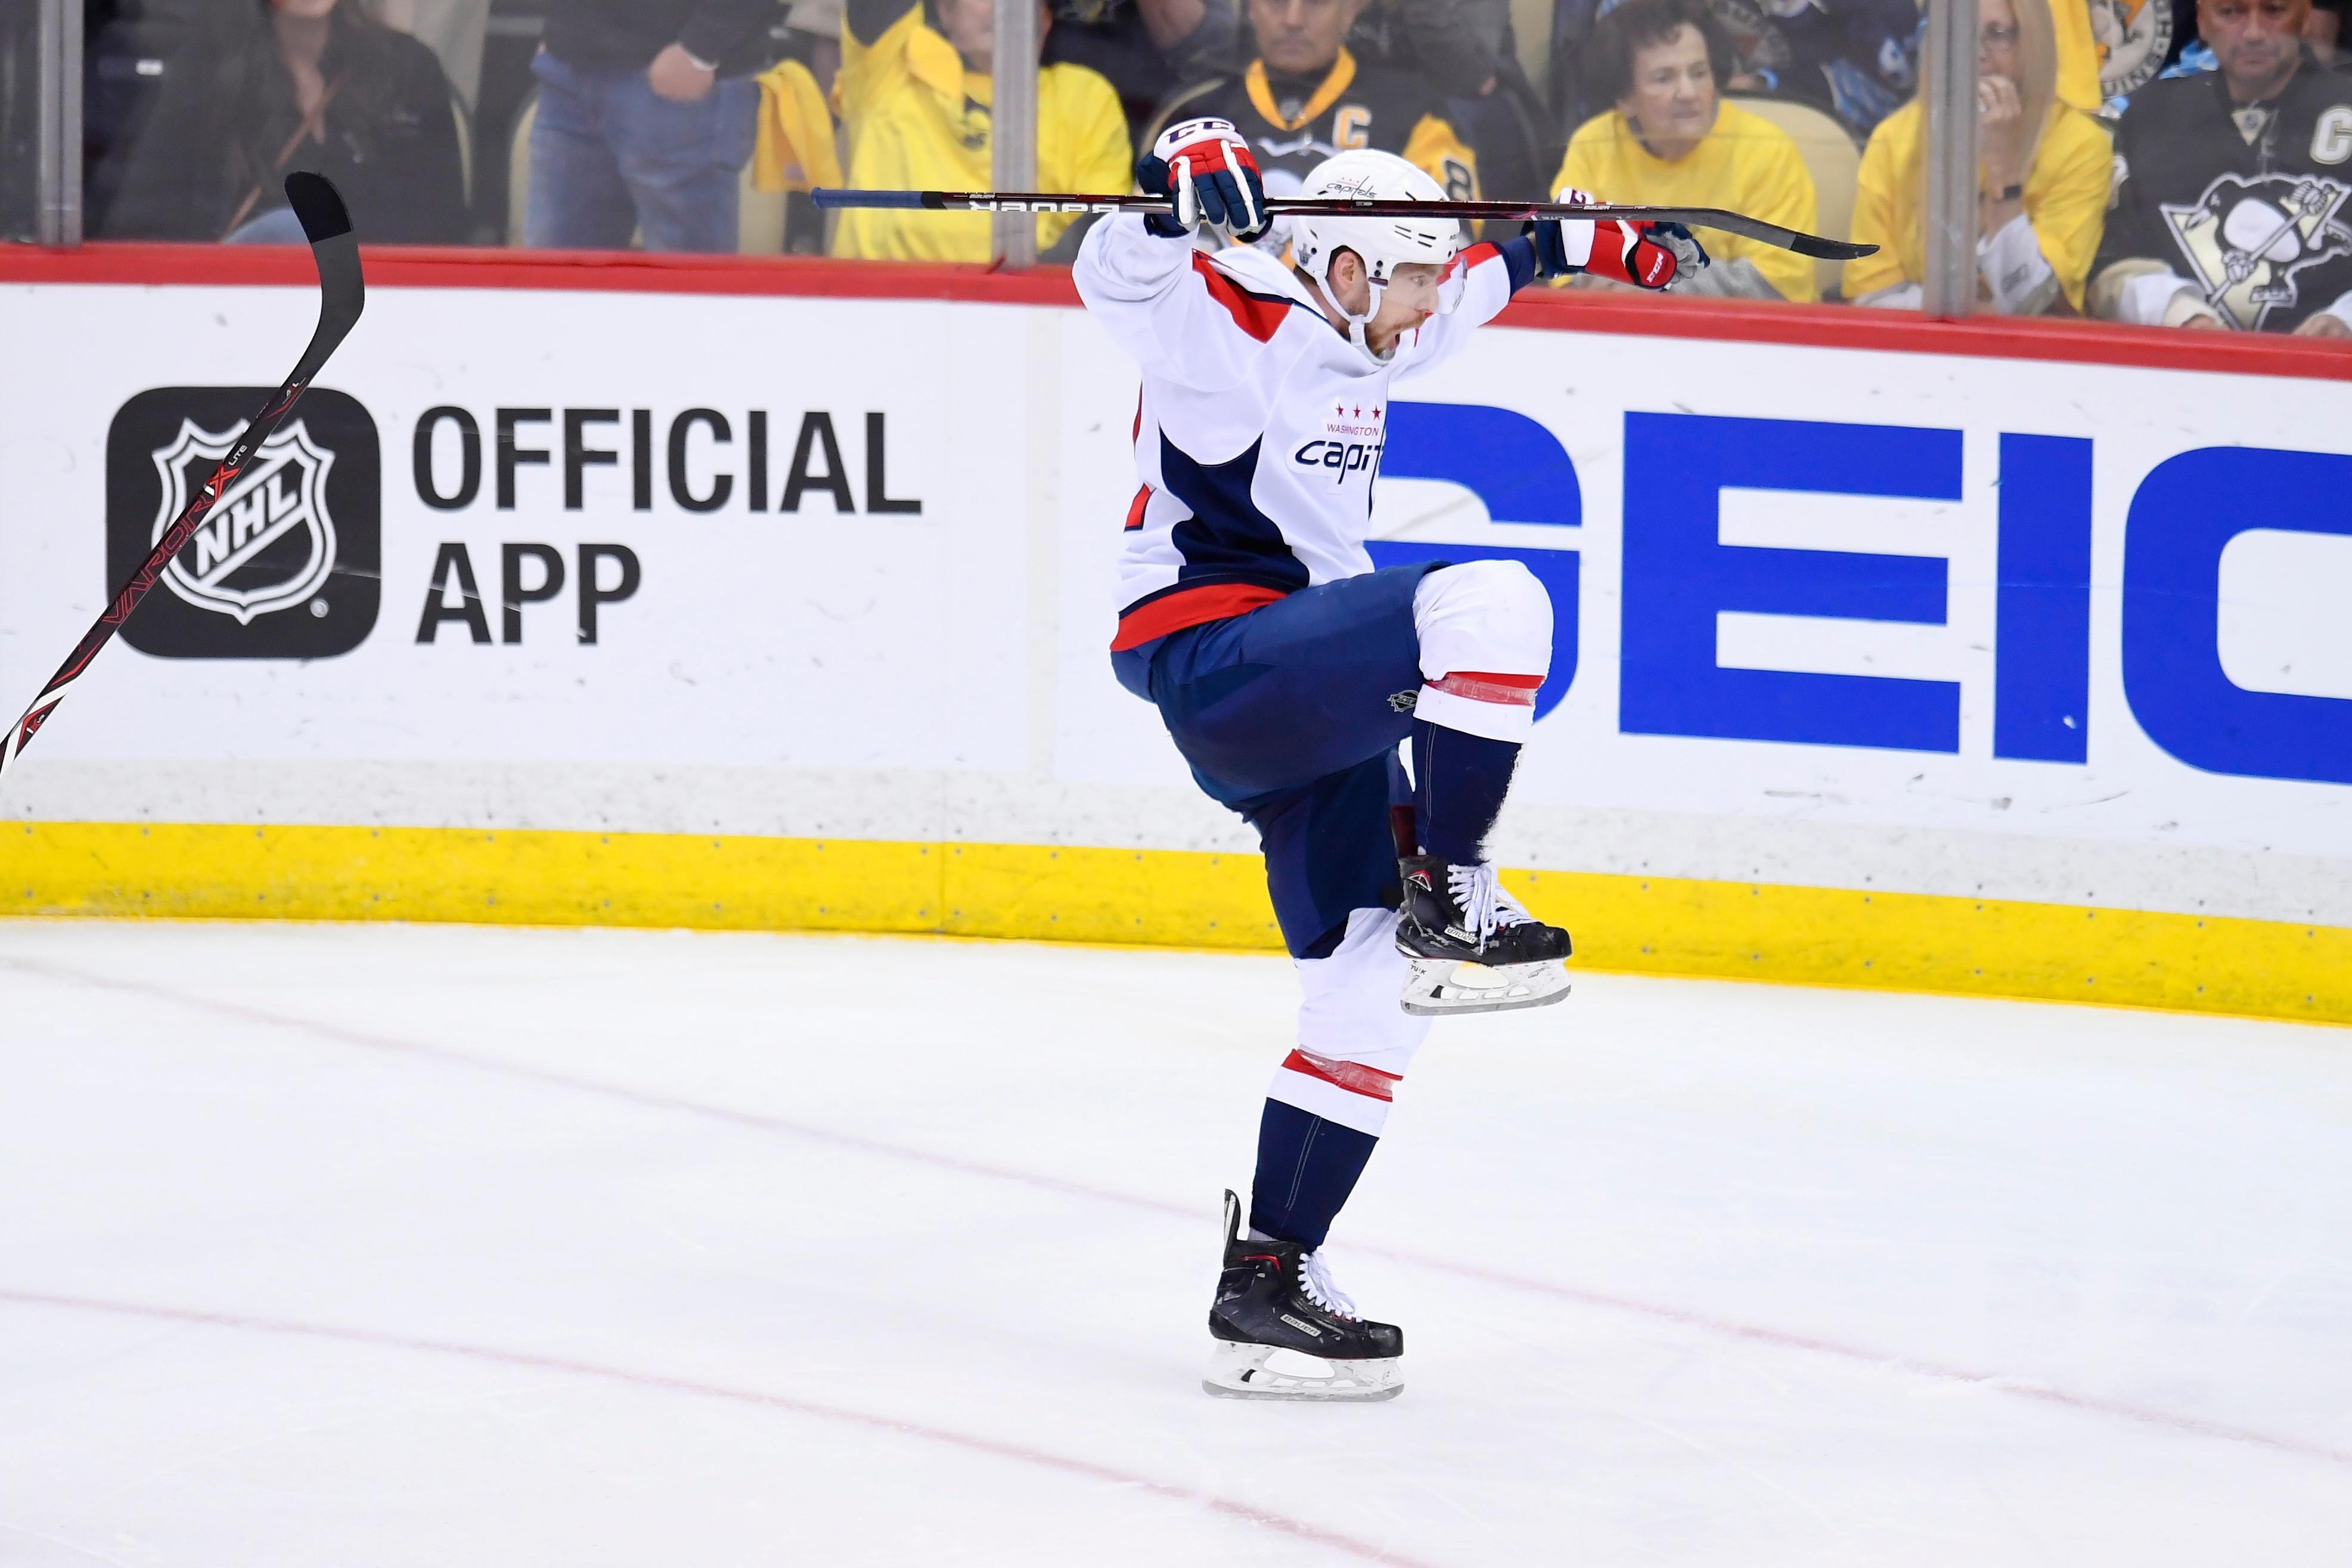 PITTSBURGH, PA - MAY 07: Washington Capitals Center Evgeny Kuznetsov (92) celebrates after scoring the game winning goal during the overtime period. The Washington Capitals went on win 2-1 in the overtime period against the Pittsburgh Penguins in Game Six of the Eastern Conference Second Round during the 2018 NHL Stanley Cup Playoffs on May 7, 2018, at PPG Paints Arena in Pittsburgh, PA. The Capitals won the series 4-2 and advance to the Conference Finals. (Photo by Jeanine Leech/Icon Sportswire via Getty Images)